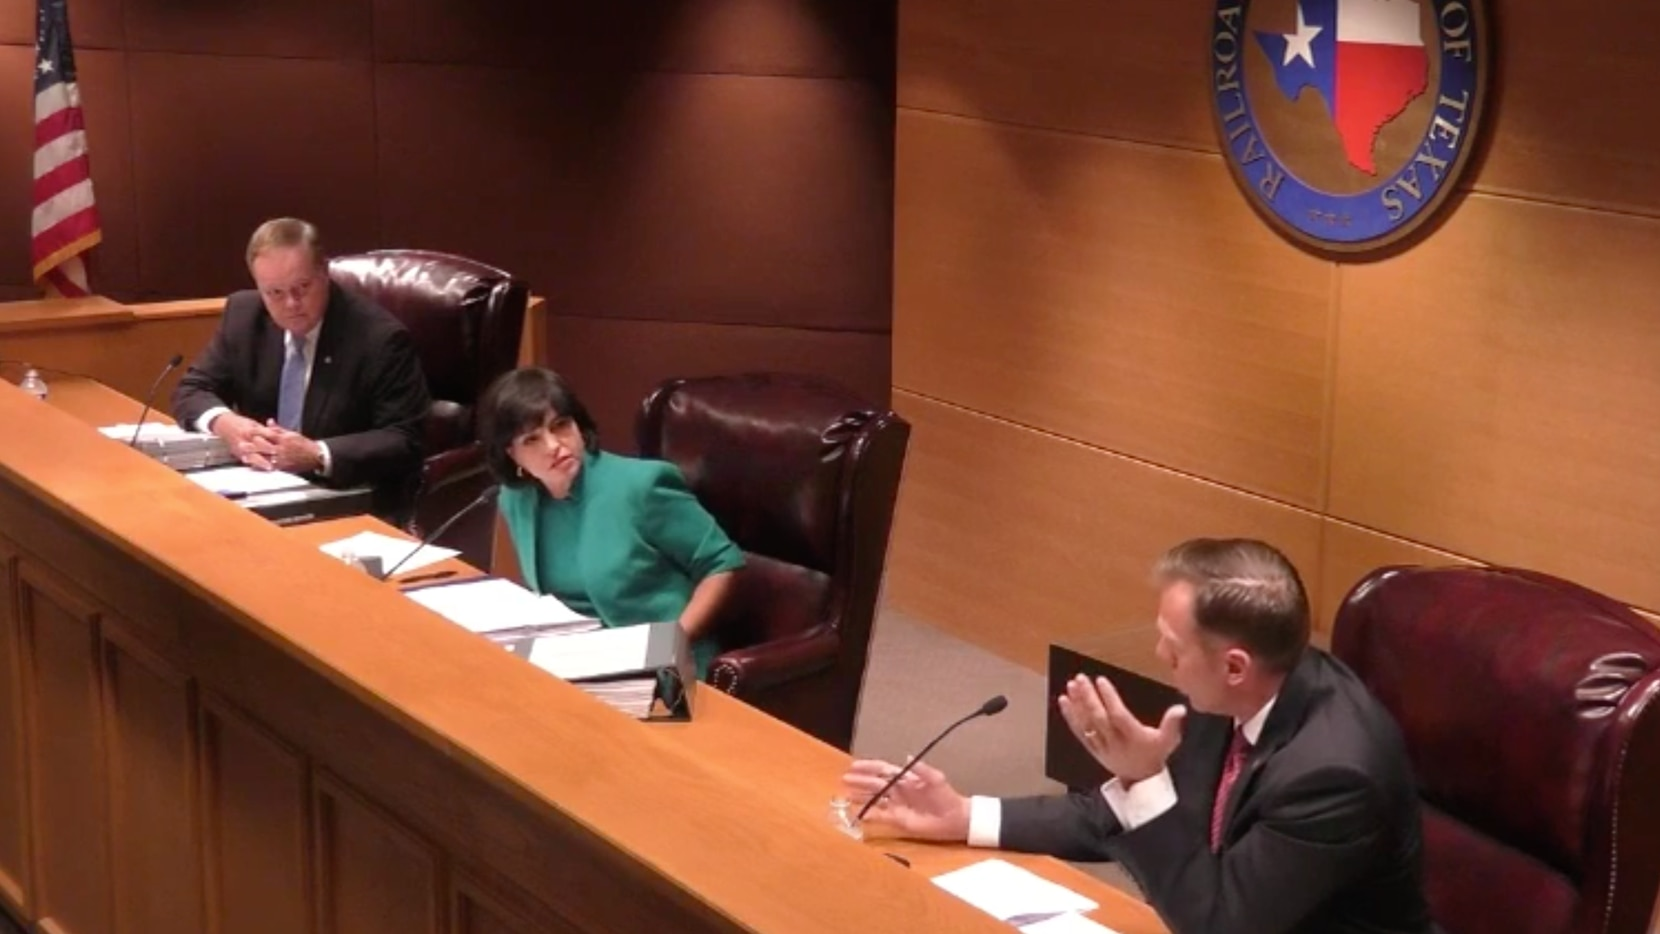 From left: Texas Railroad Commissioner Wayne Christian looks on as fellow Commissioner Ryan Sitton accuses Chairwoman Christi Craddick of acting beyond her authority and violating a law that prohibits backroom decision-making.